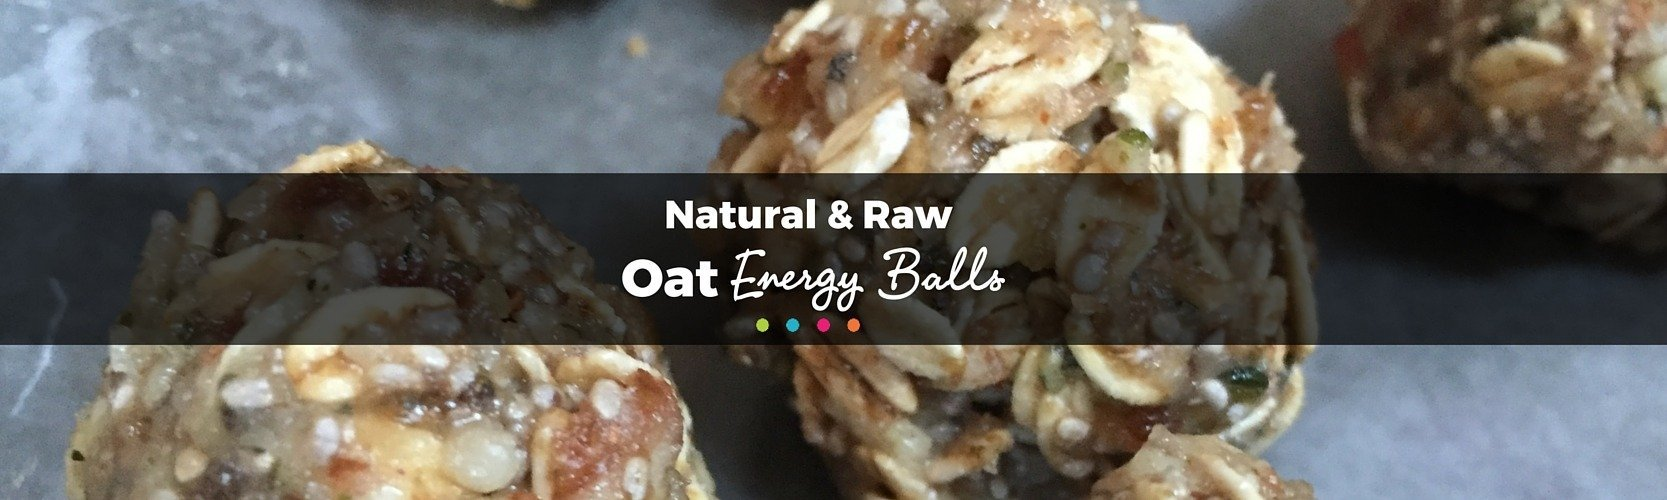 Natural, Raw Oat Energy Balls